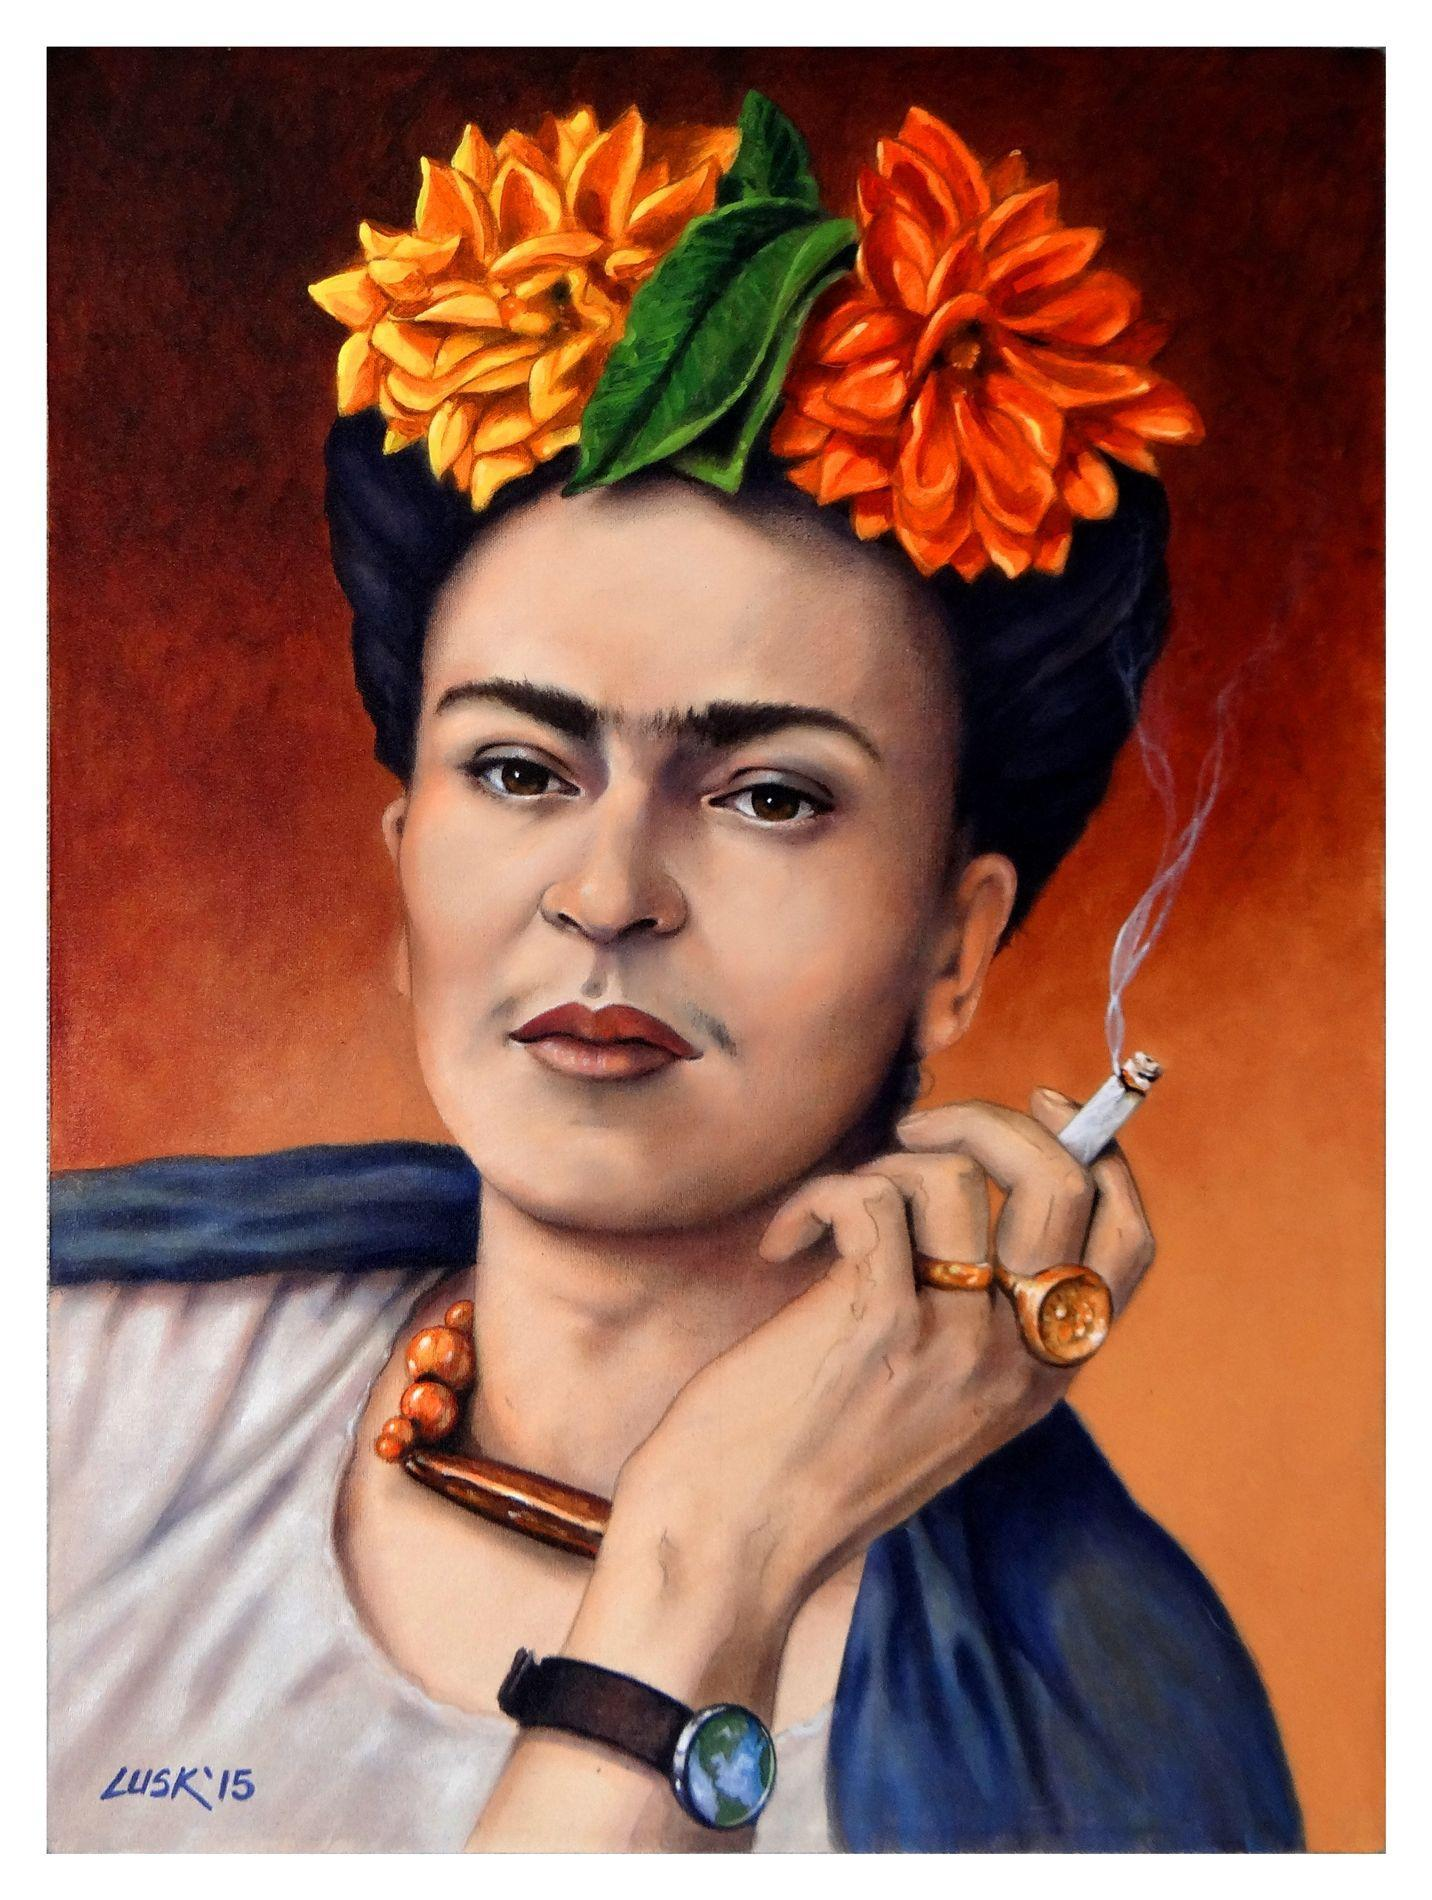 Cuadros De Frida Khalo Frida Kahlo Wallpapers Wallpaper Cave